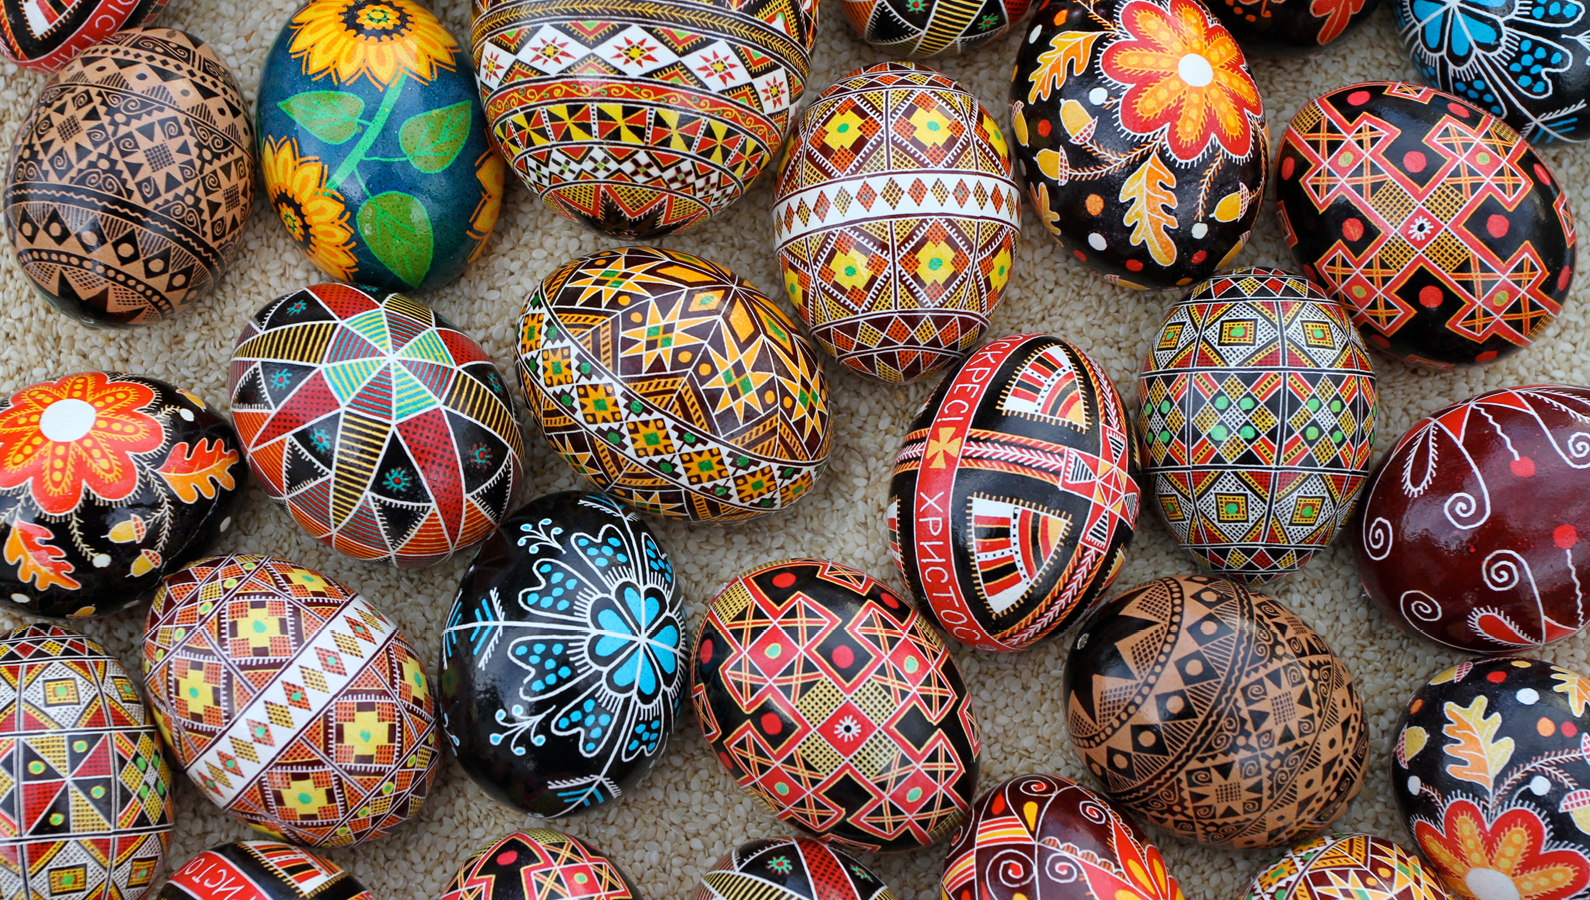 Ukranian 'Pysanky' is the Coolest Way to Decorate Easter Eggs